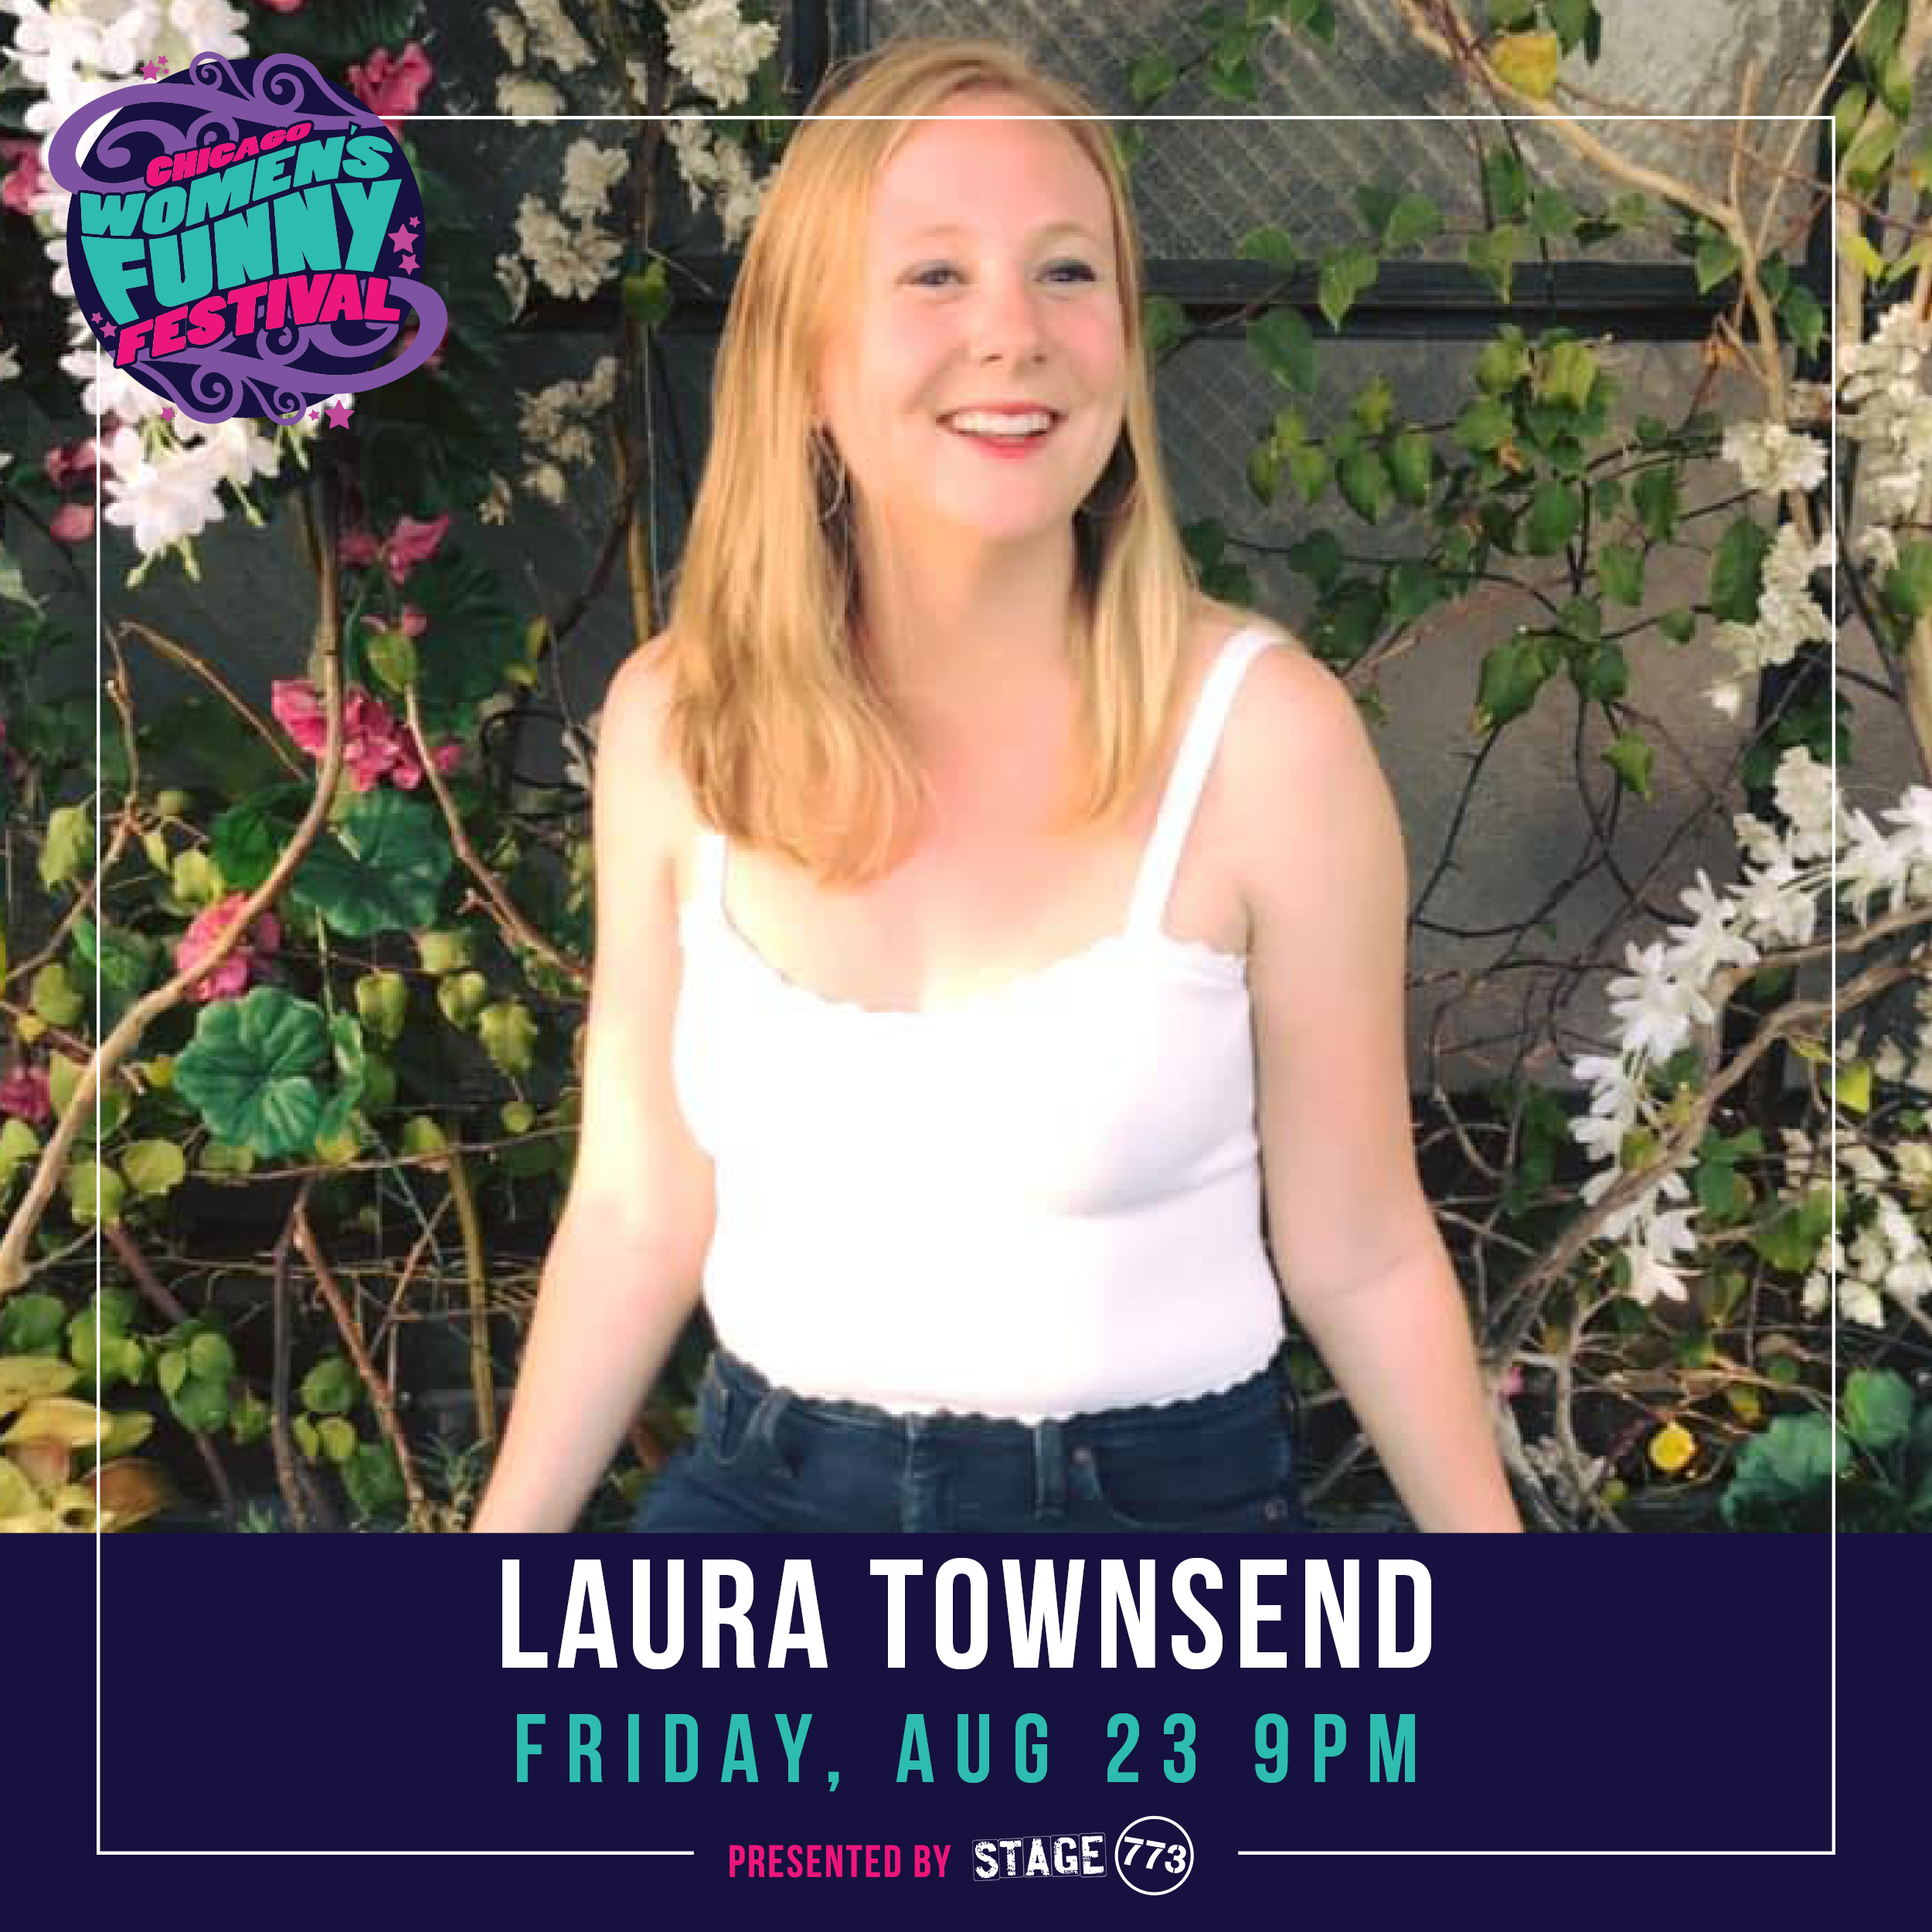 LauraTownsend_Friday_9PM_CWFF20193.jpg